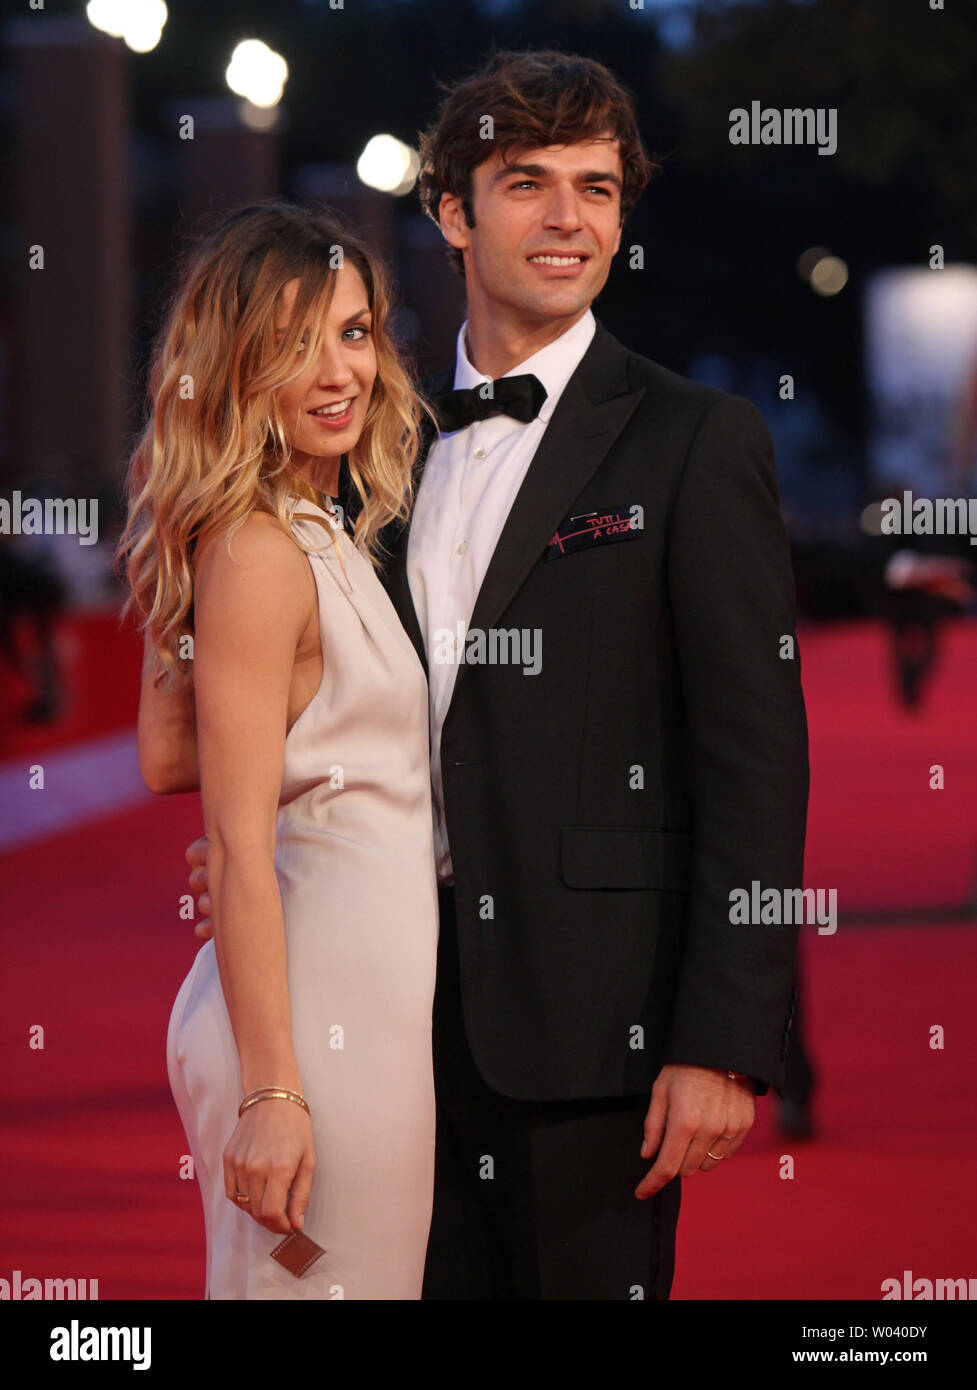 Myriam Catania (L) and Luca Argentero arrive on the red carpet before the screening of a digitally restored version of the 1960 classic film 'La Dolce Vita' during the 5th Rome International Film Festival in Rome on October 30, 2010.   UPI/David Silpa - Stock Image